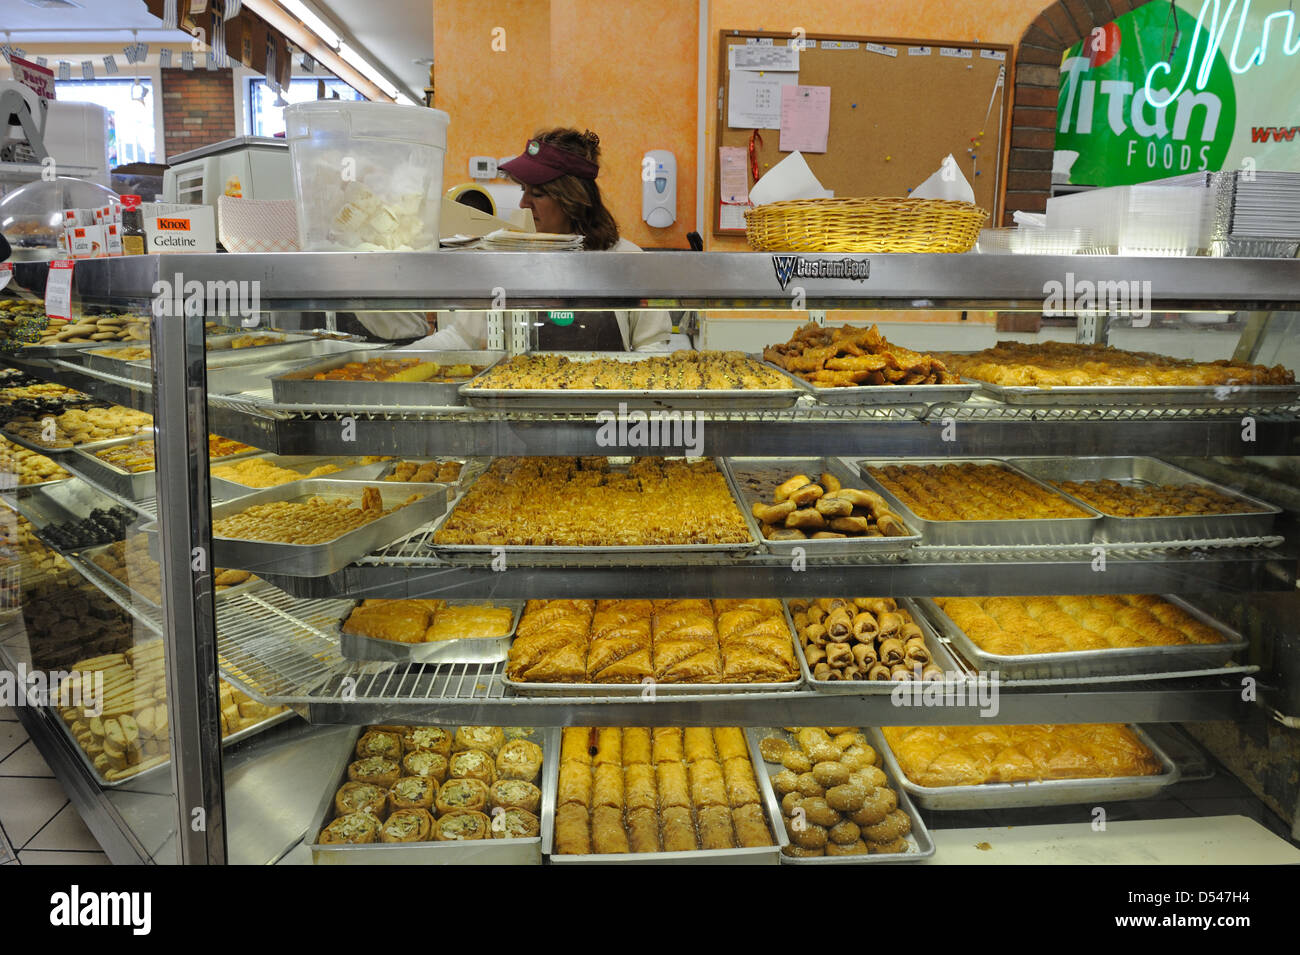 Pastries For Sale Stock Photos & Pastries For Sale Stock Images - Alamy